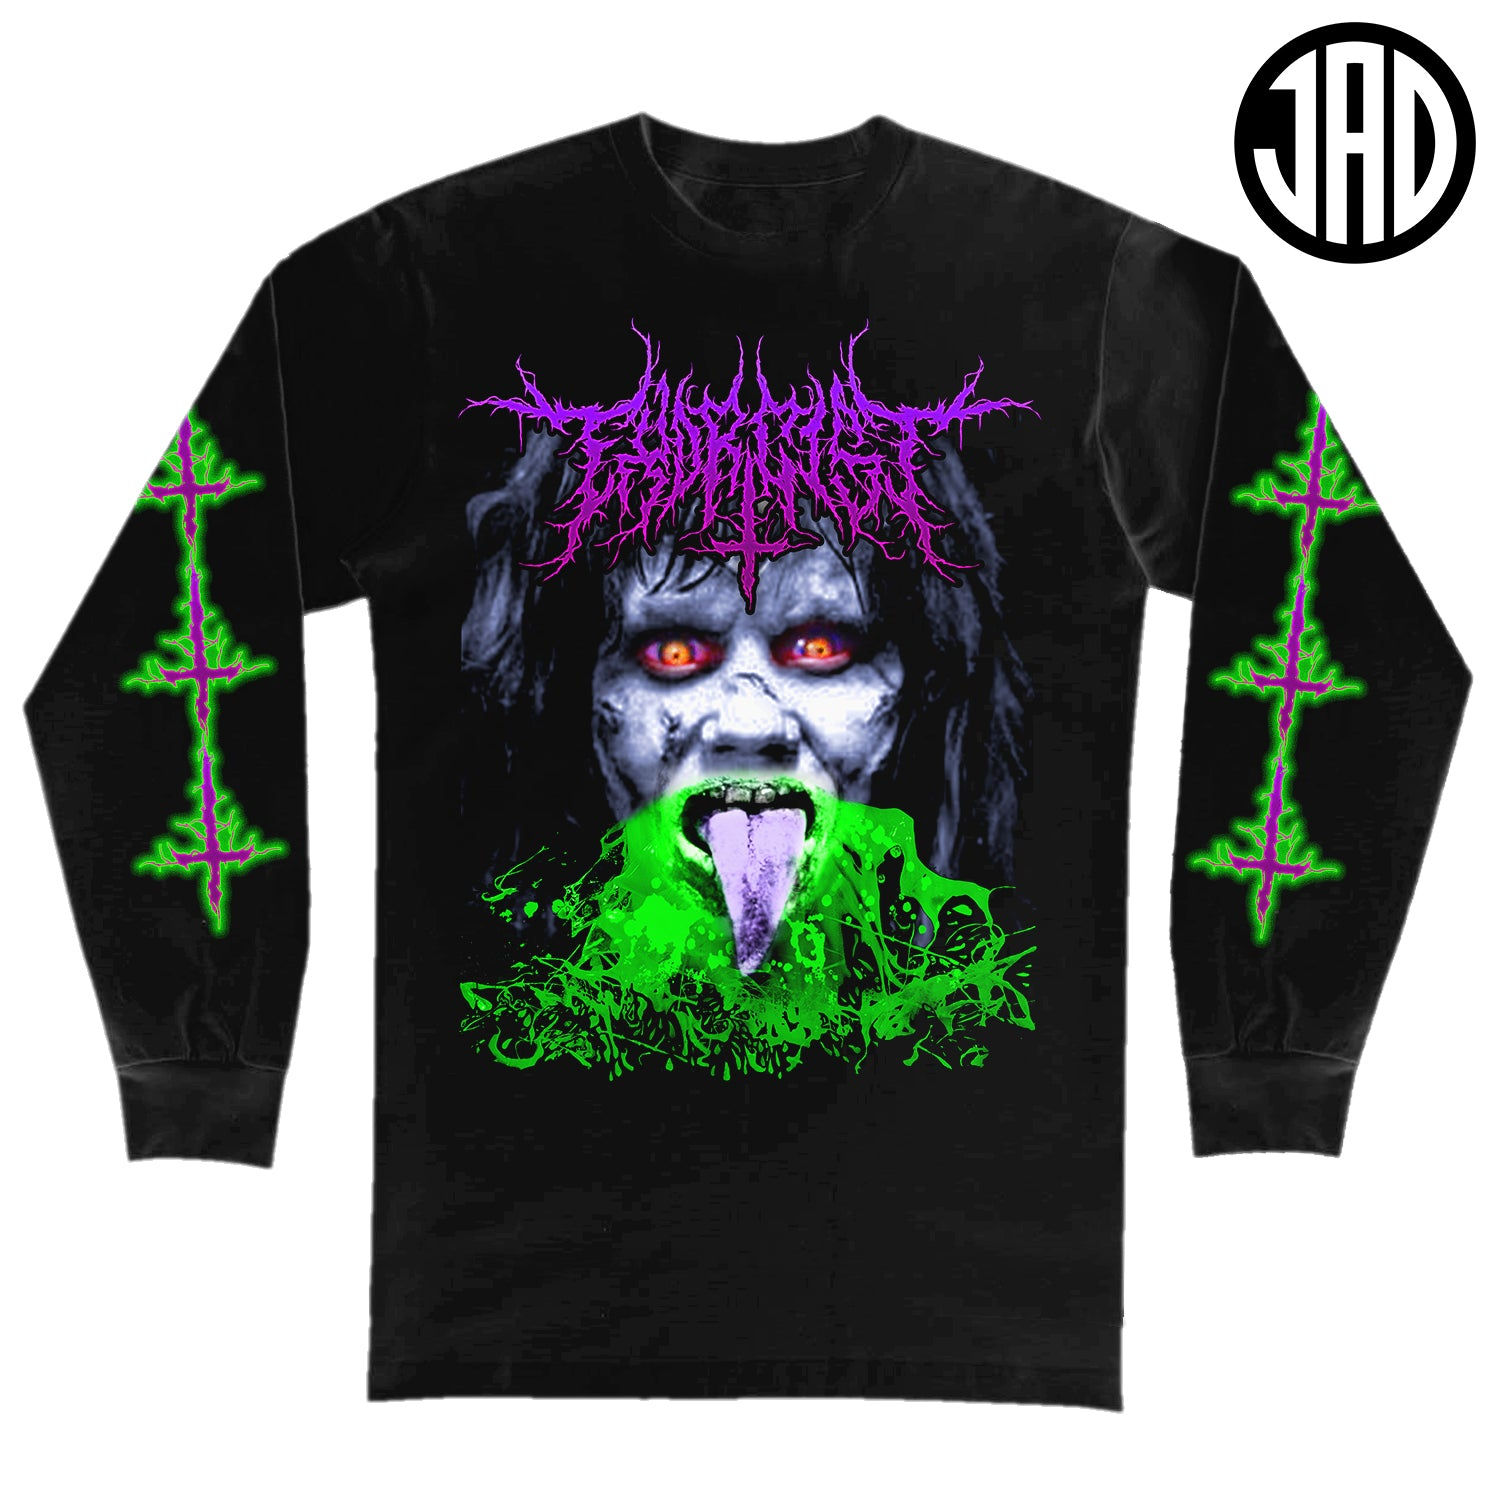 Exorcist Metal - Men's (Unisex) Long Sleeve Tee